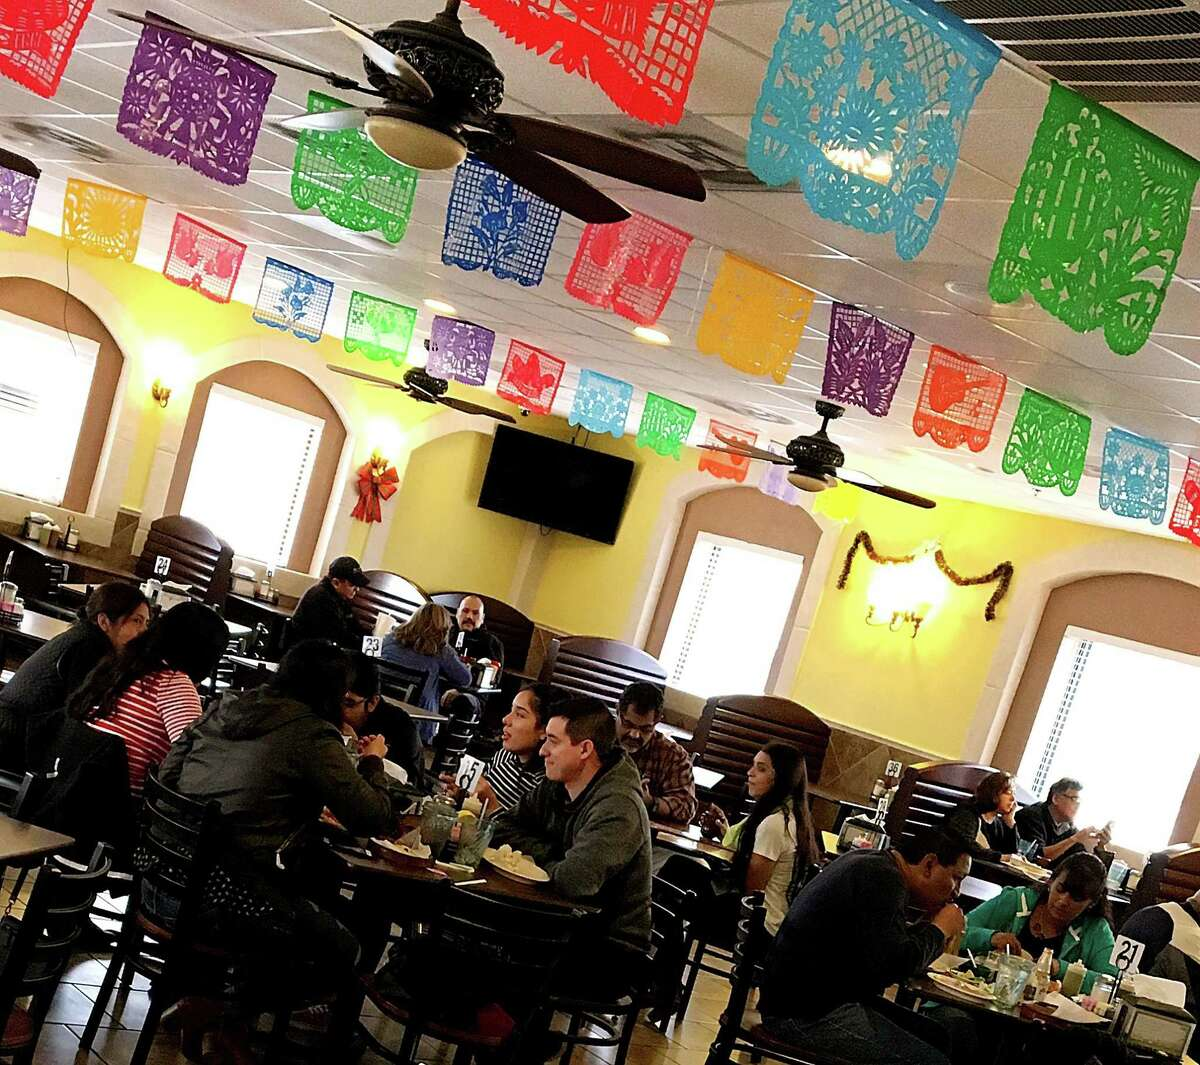 Investigators for the Labor Department's Wage and Hour Division found Taqueria Chapala Jalisco paid employees flat amounts each day without regard to the number of hours they worked.